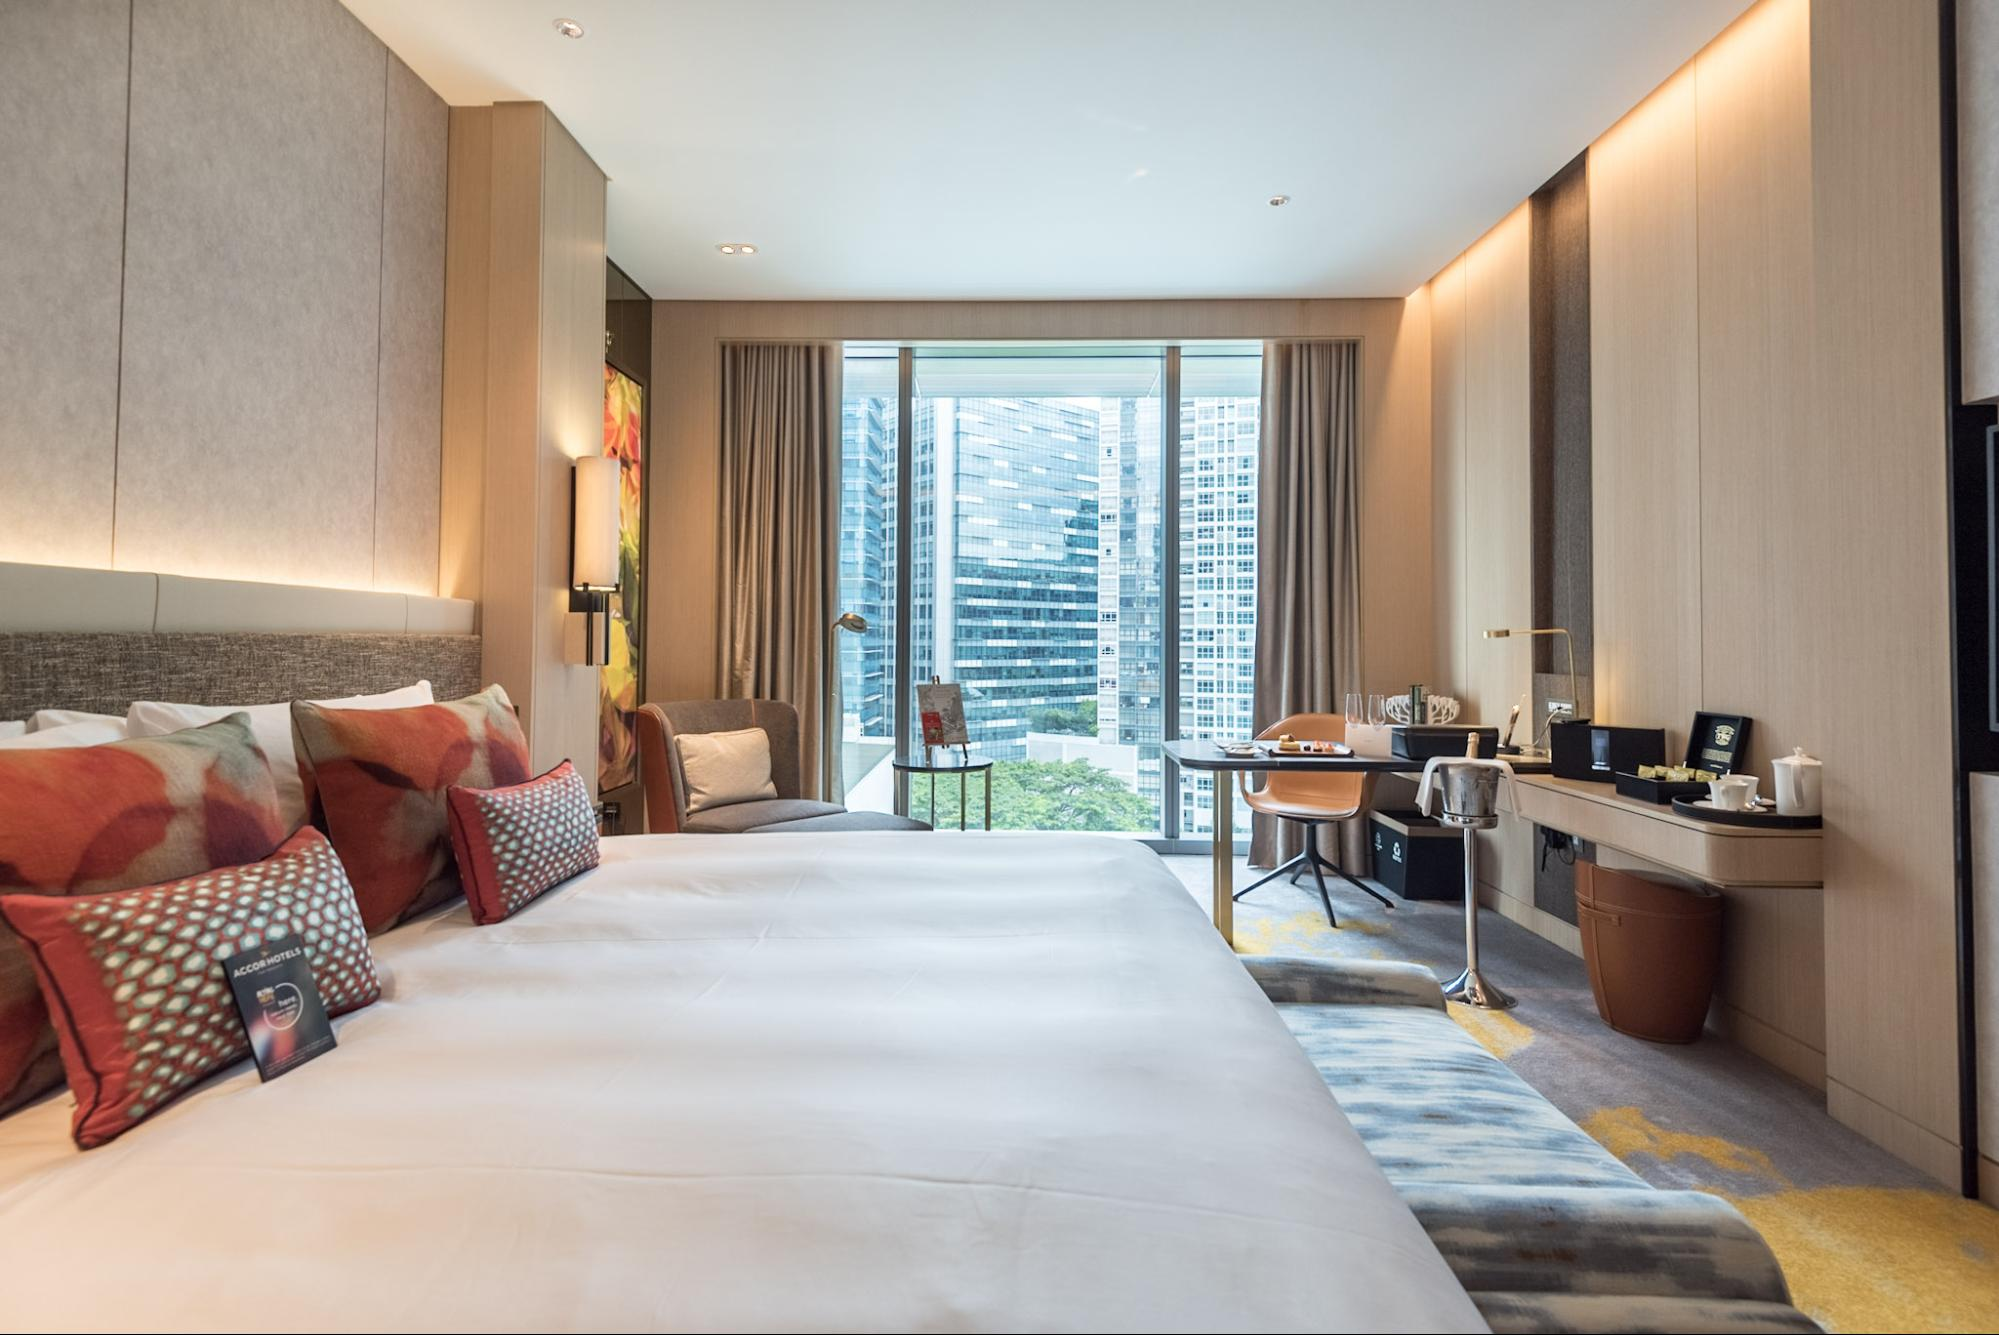 Everything You Need To Know About Accor Plus For Up To 50 Off Dining And Discounted Hotel Stays Exclusive Discount Inside The Shutterwhale